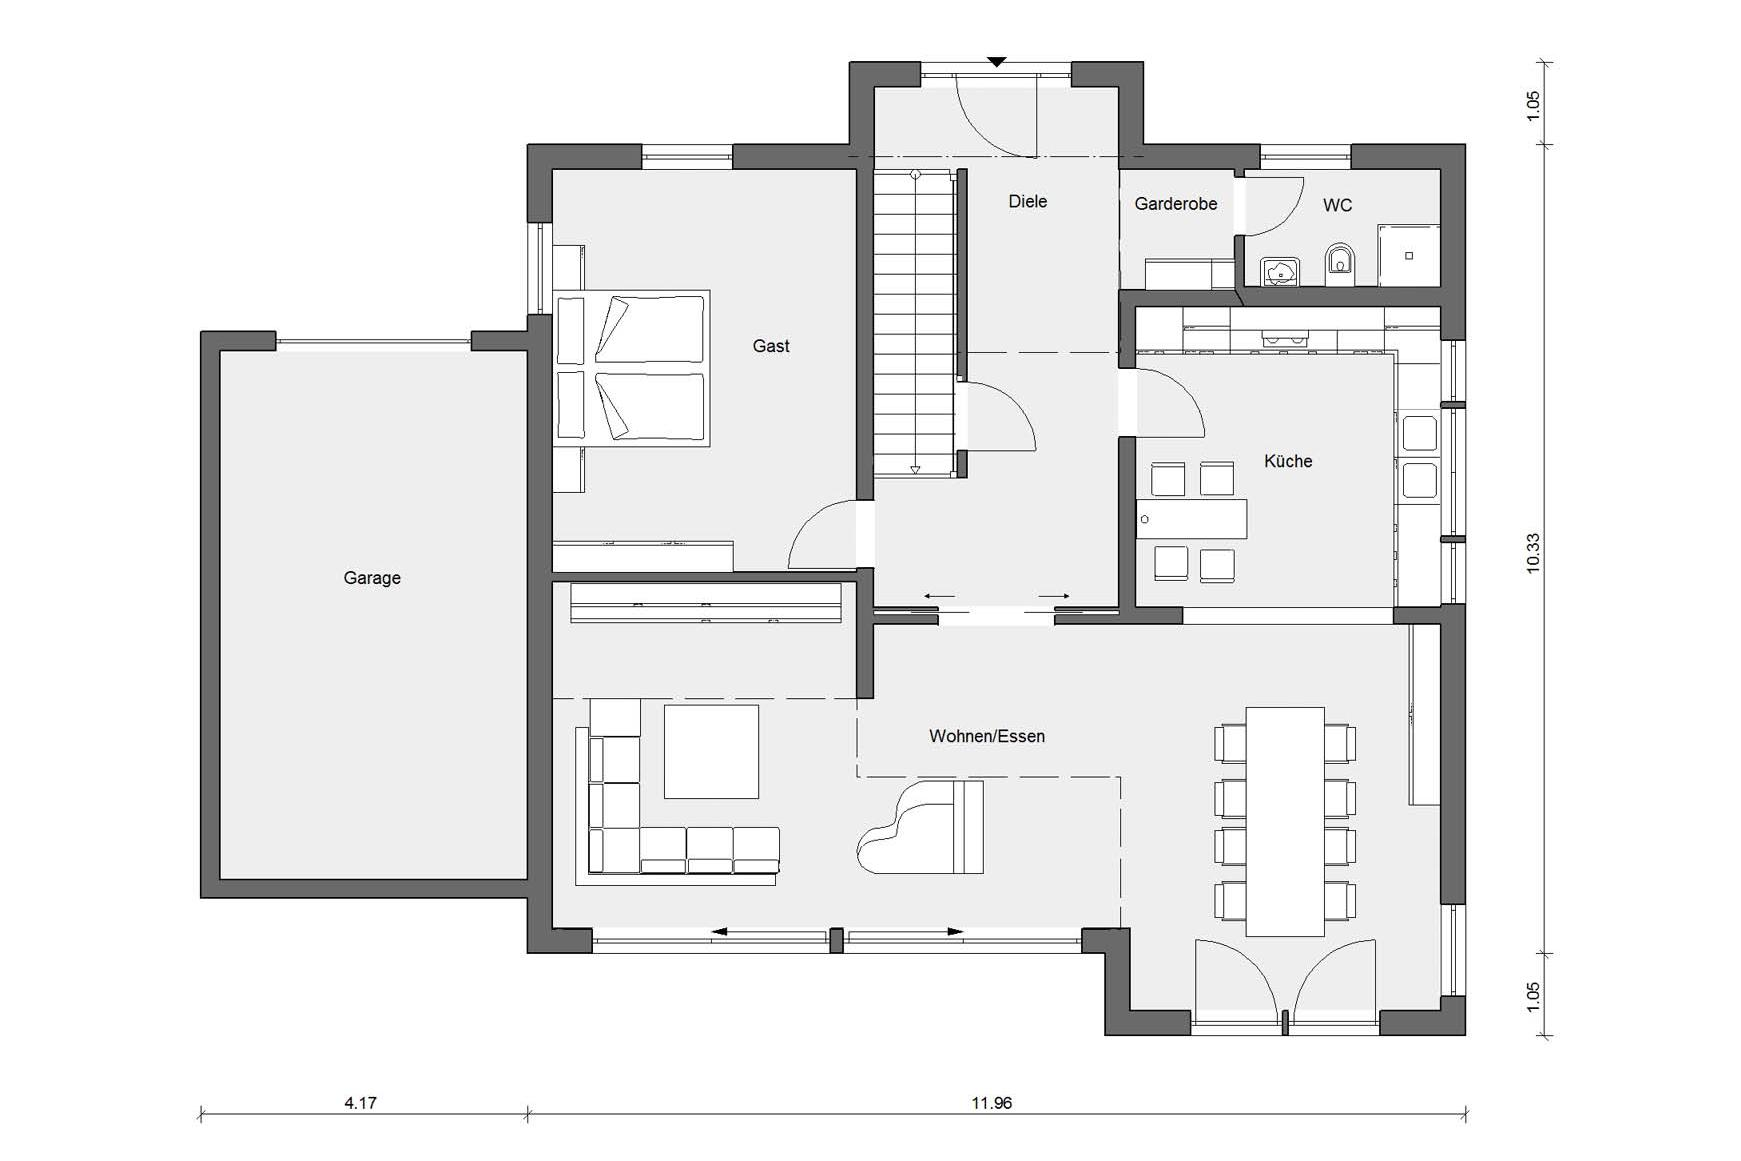 Ground floor plan E 15-197.2 Prefabricated house with clinker facade